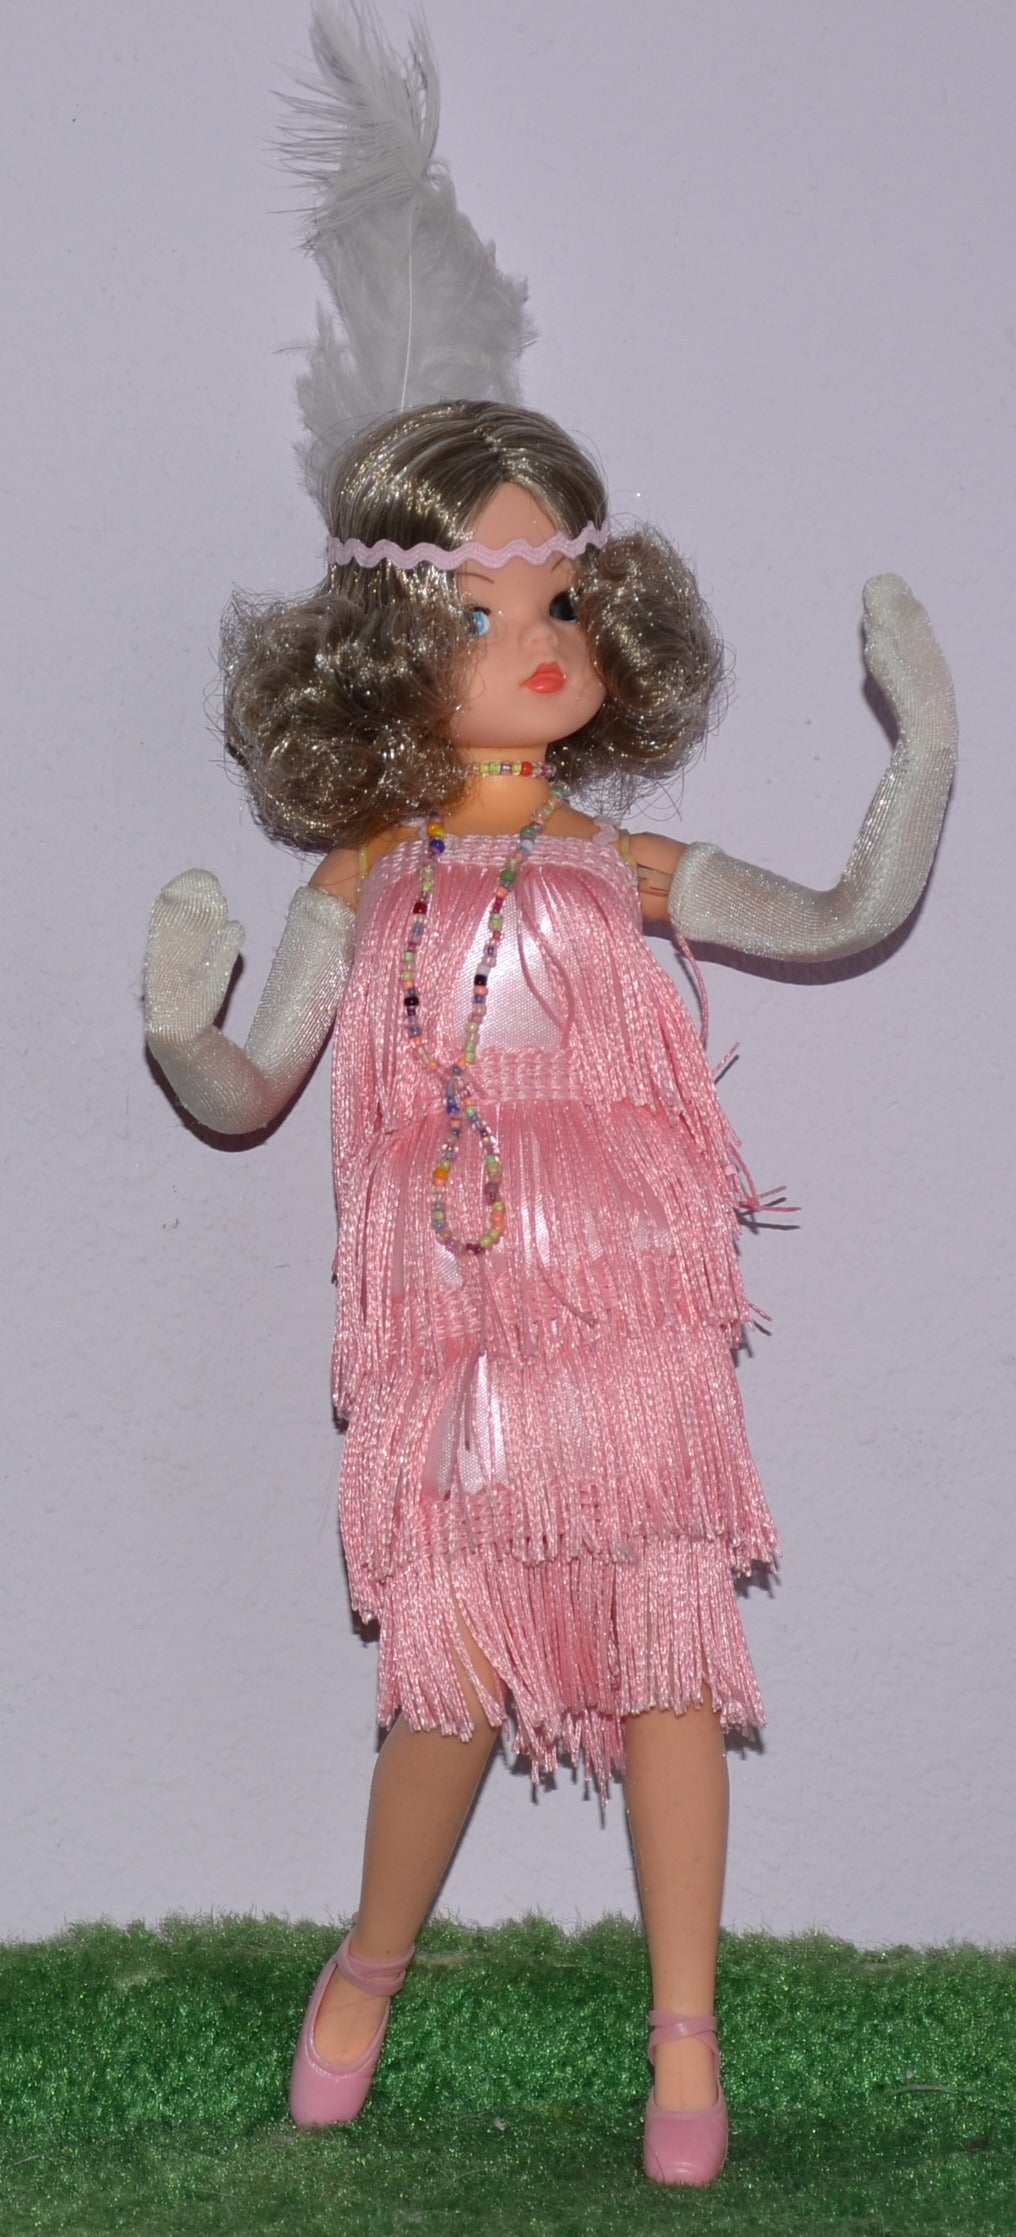 Bubbles a Sindy doll in flapper outfit by Lesley Carter